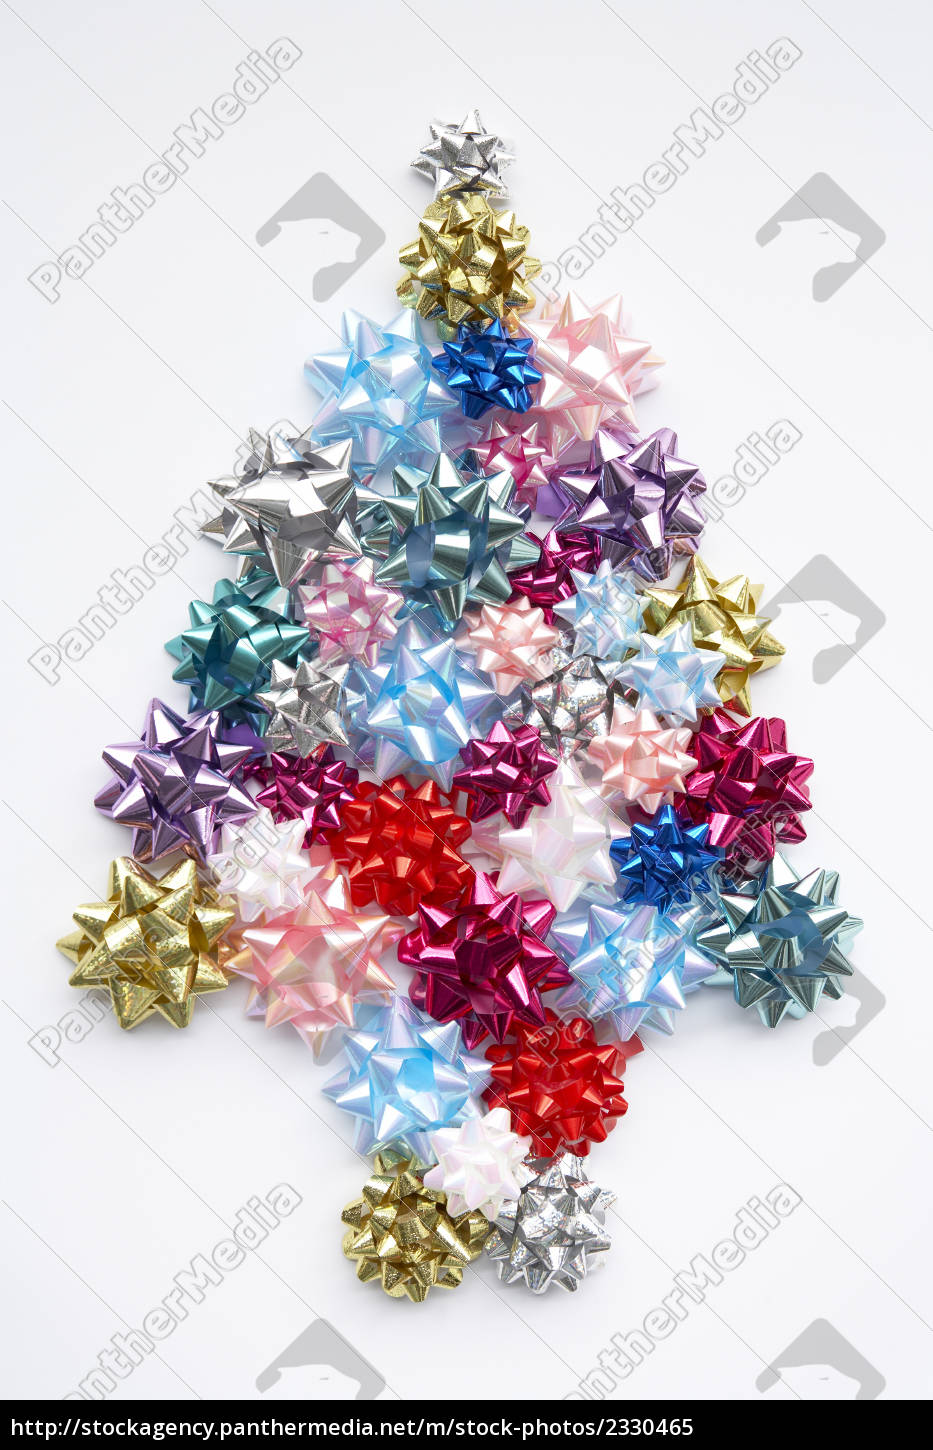 Christmas Tree Bows White.Stock Photo 2330465 Christmas Tree Made From Gift Bows Against White Background